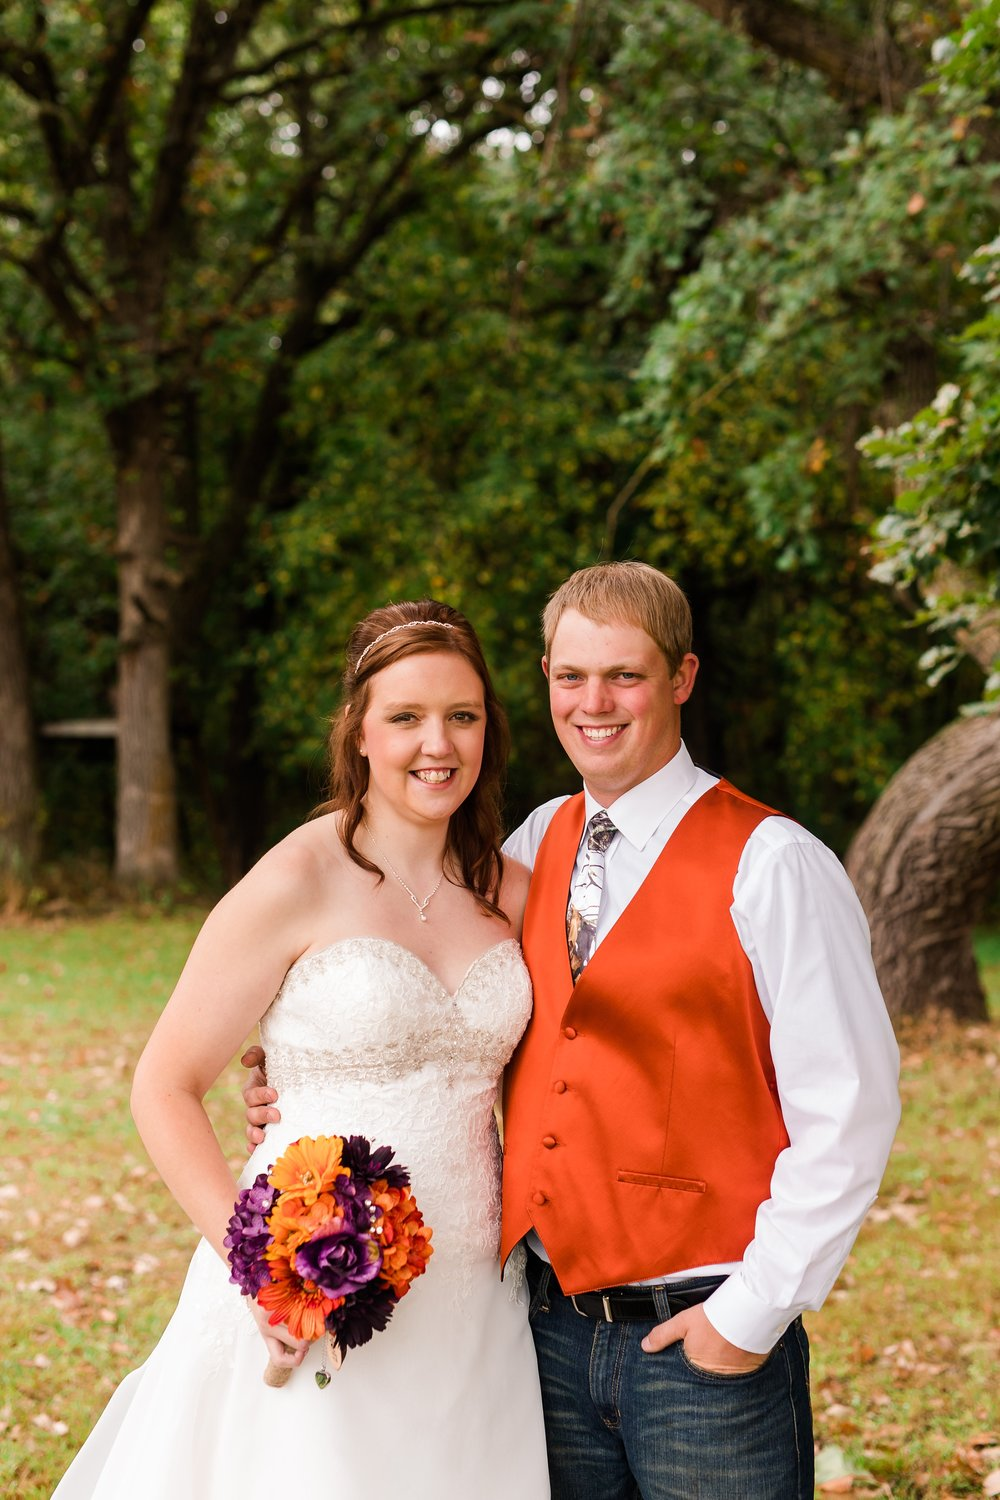 Amber Langerud_Lake Park MN Barn wedding at the Hitching Post_0407.jpg